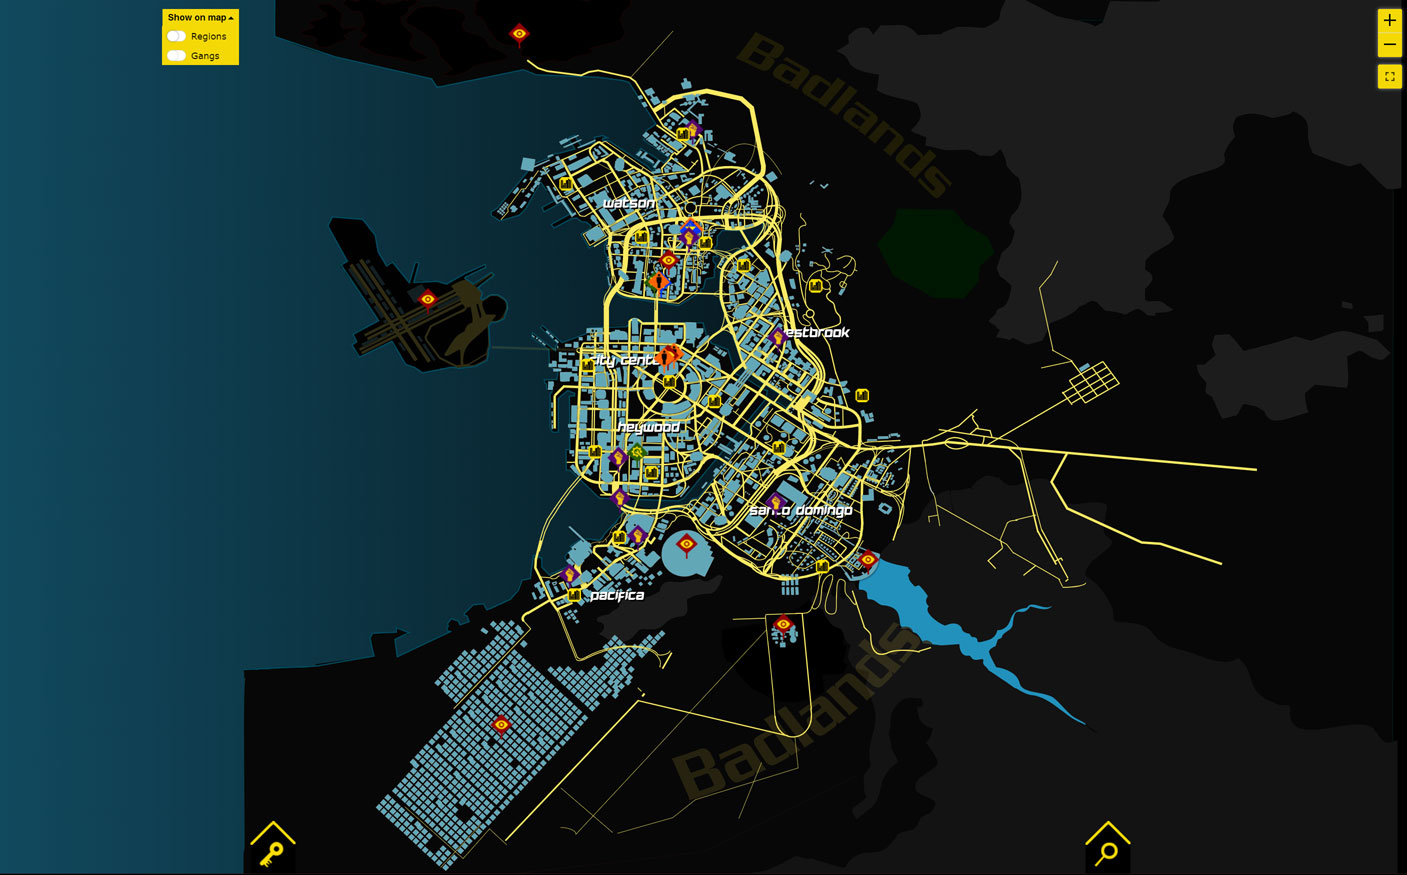 Fast travel. How do I teleport around the map in Cyberpunk 2077?